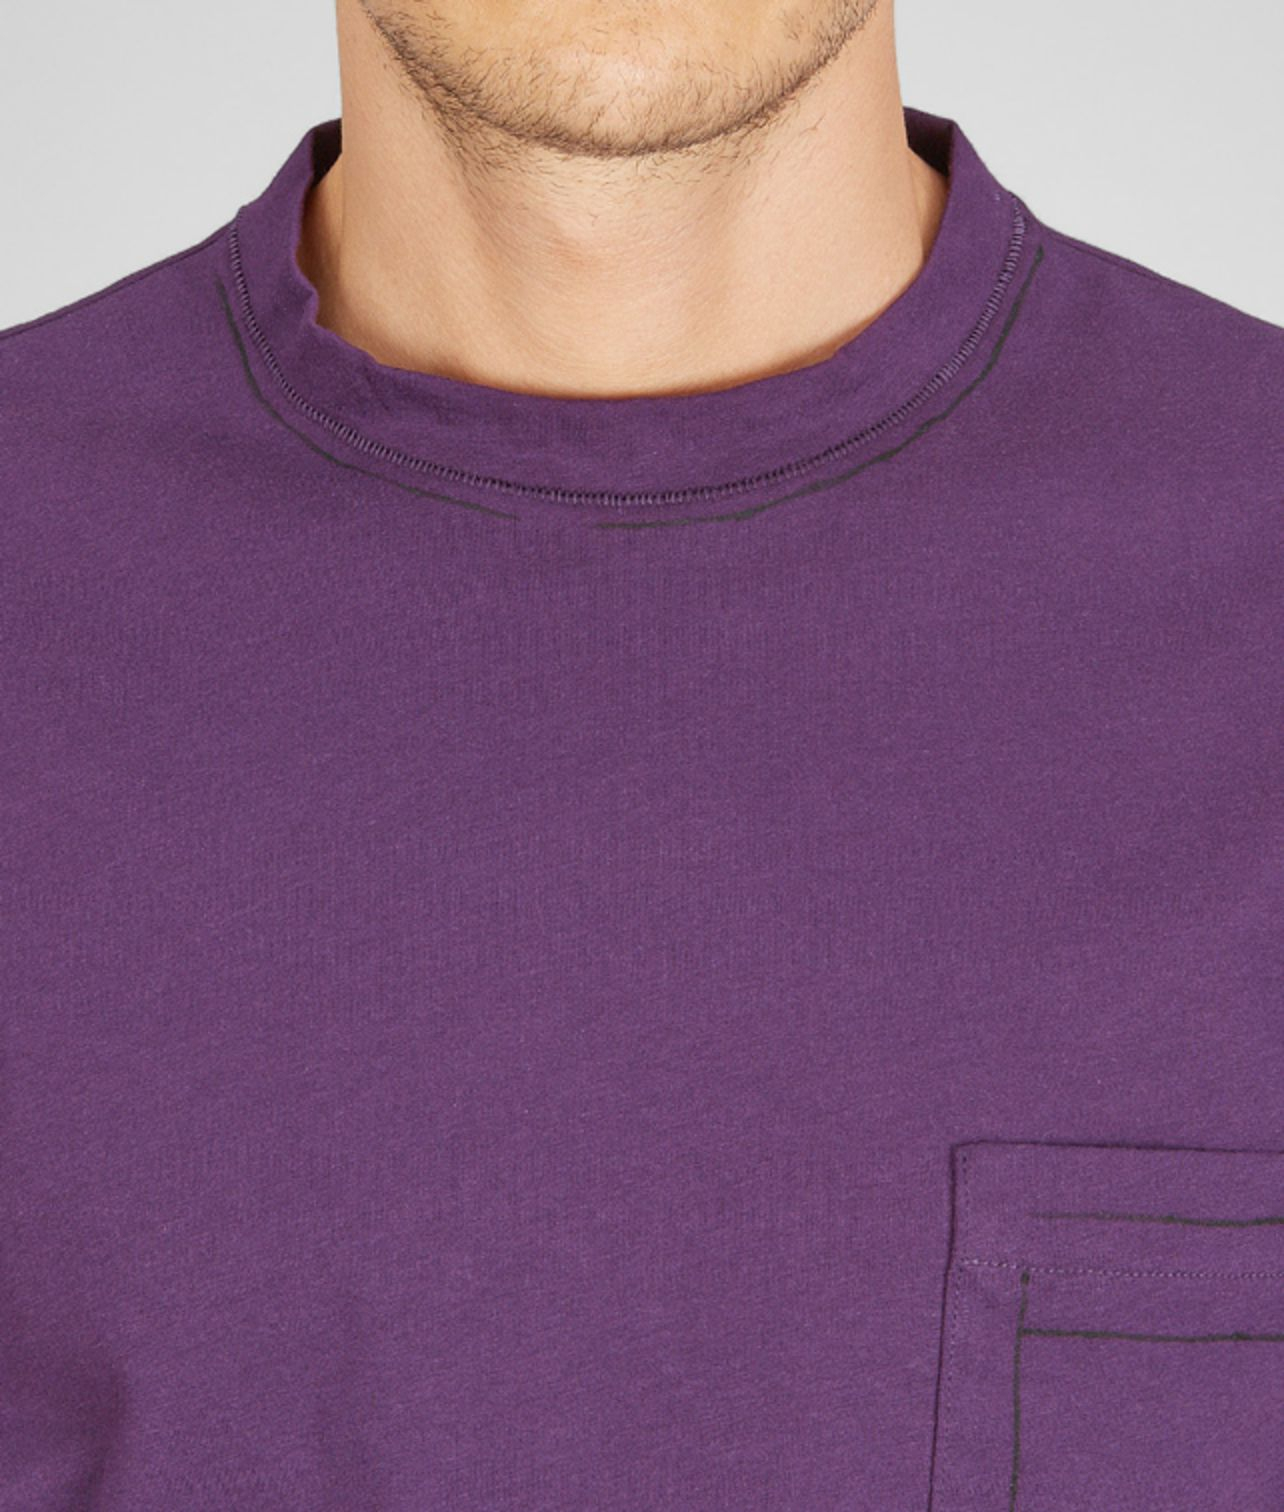 Lyst bottega veneta purpura painted organic cotton t for Bottega veneta t shirt